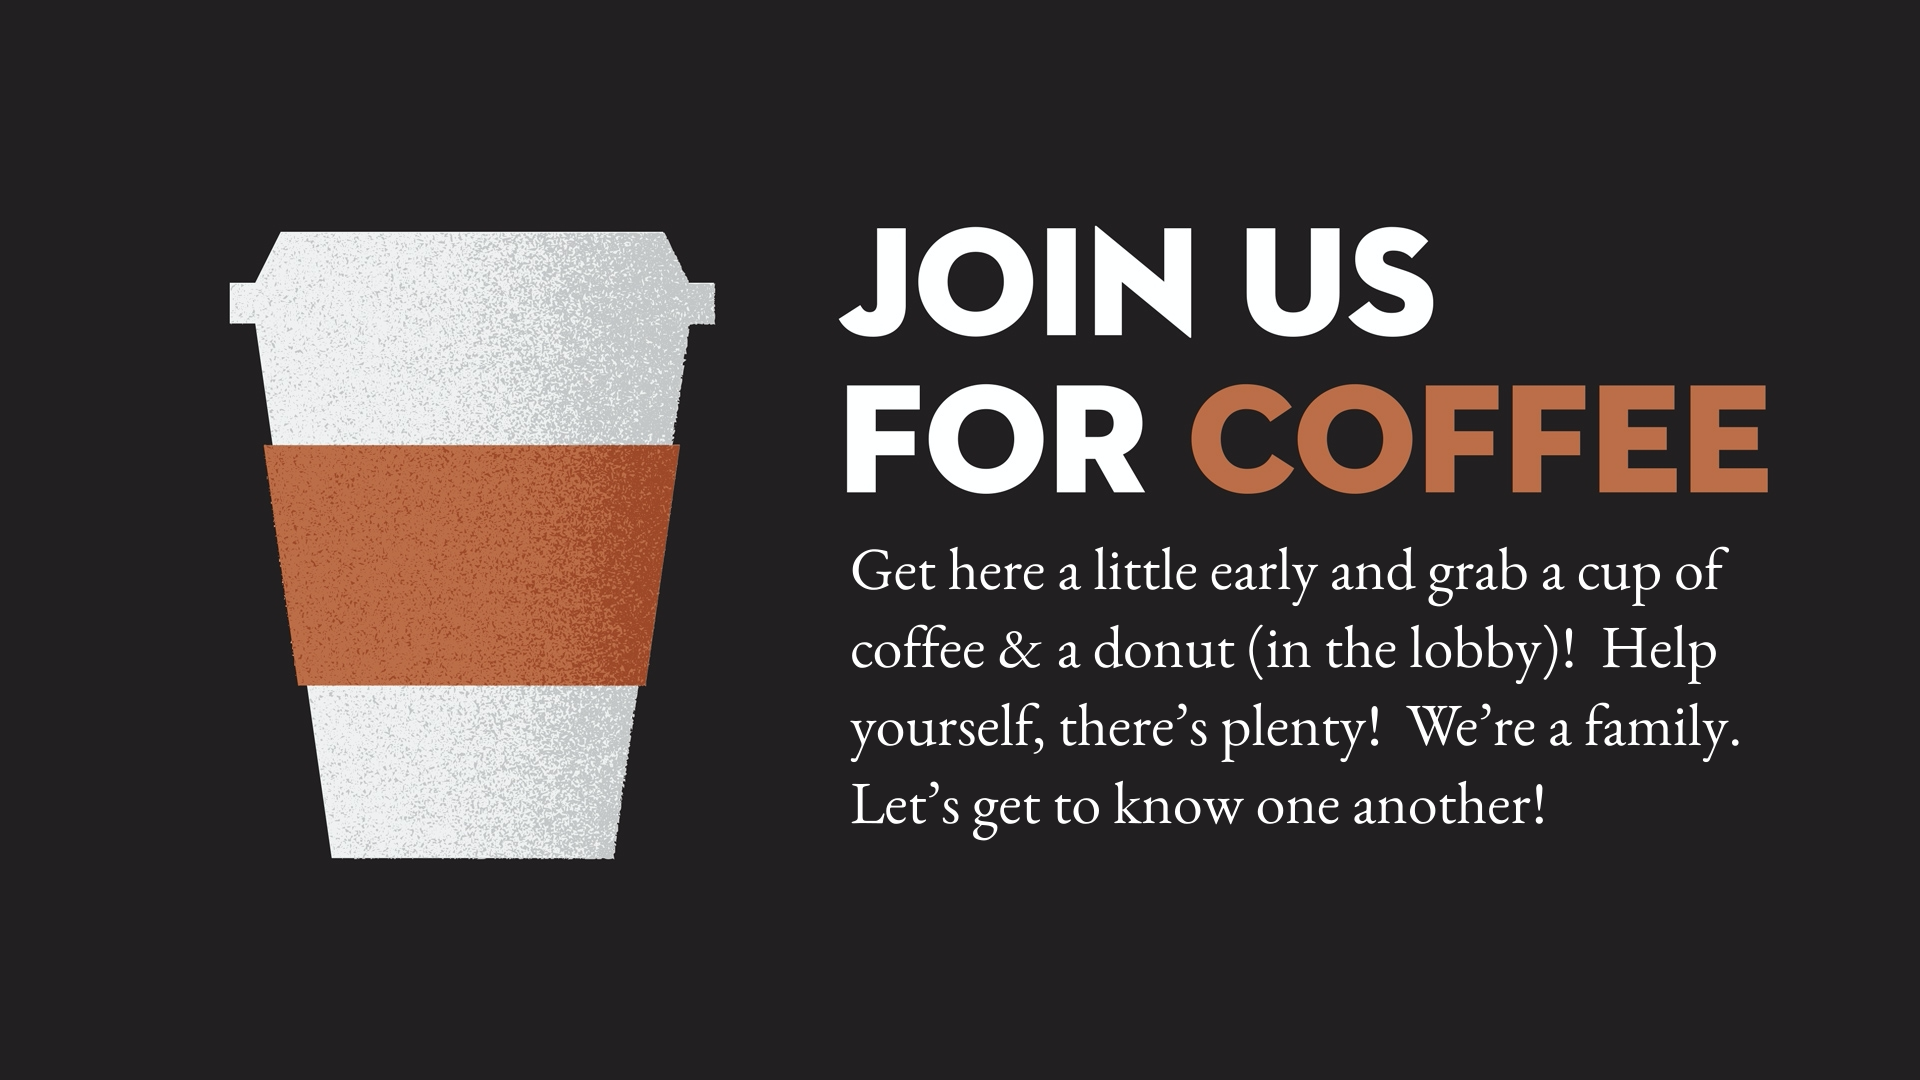 Join us for coffee!